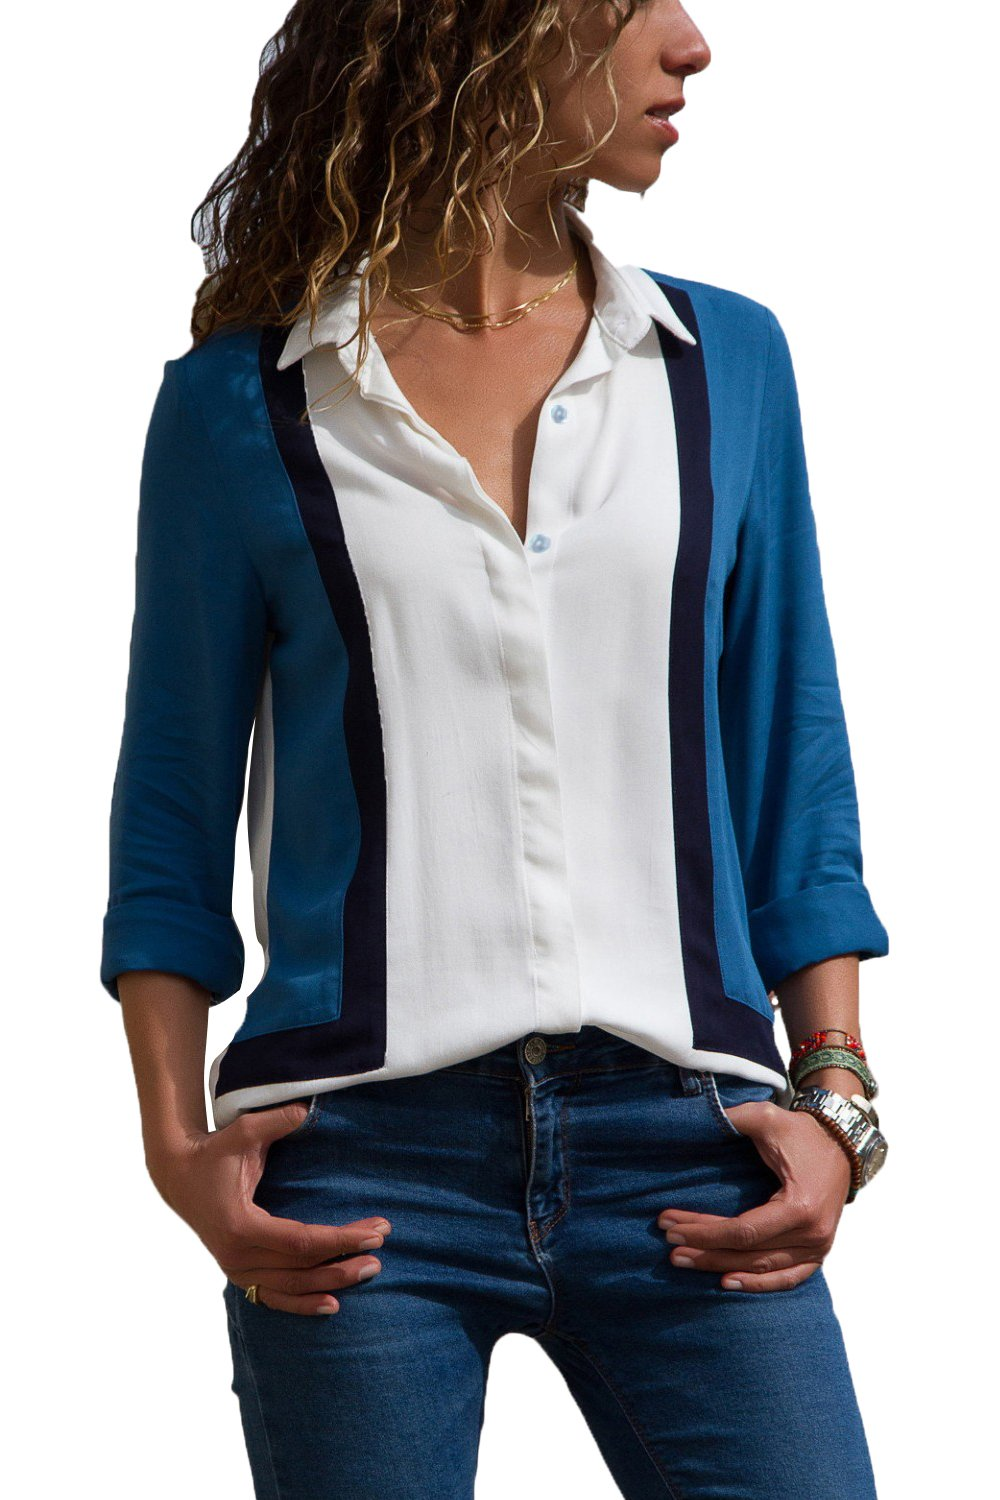 White long-sleeve shirt in blue Size L